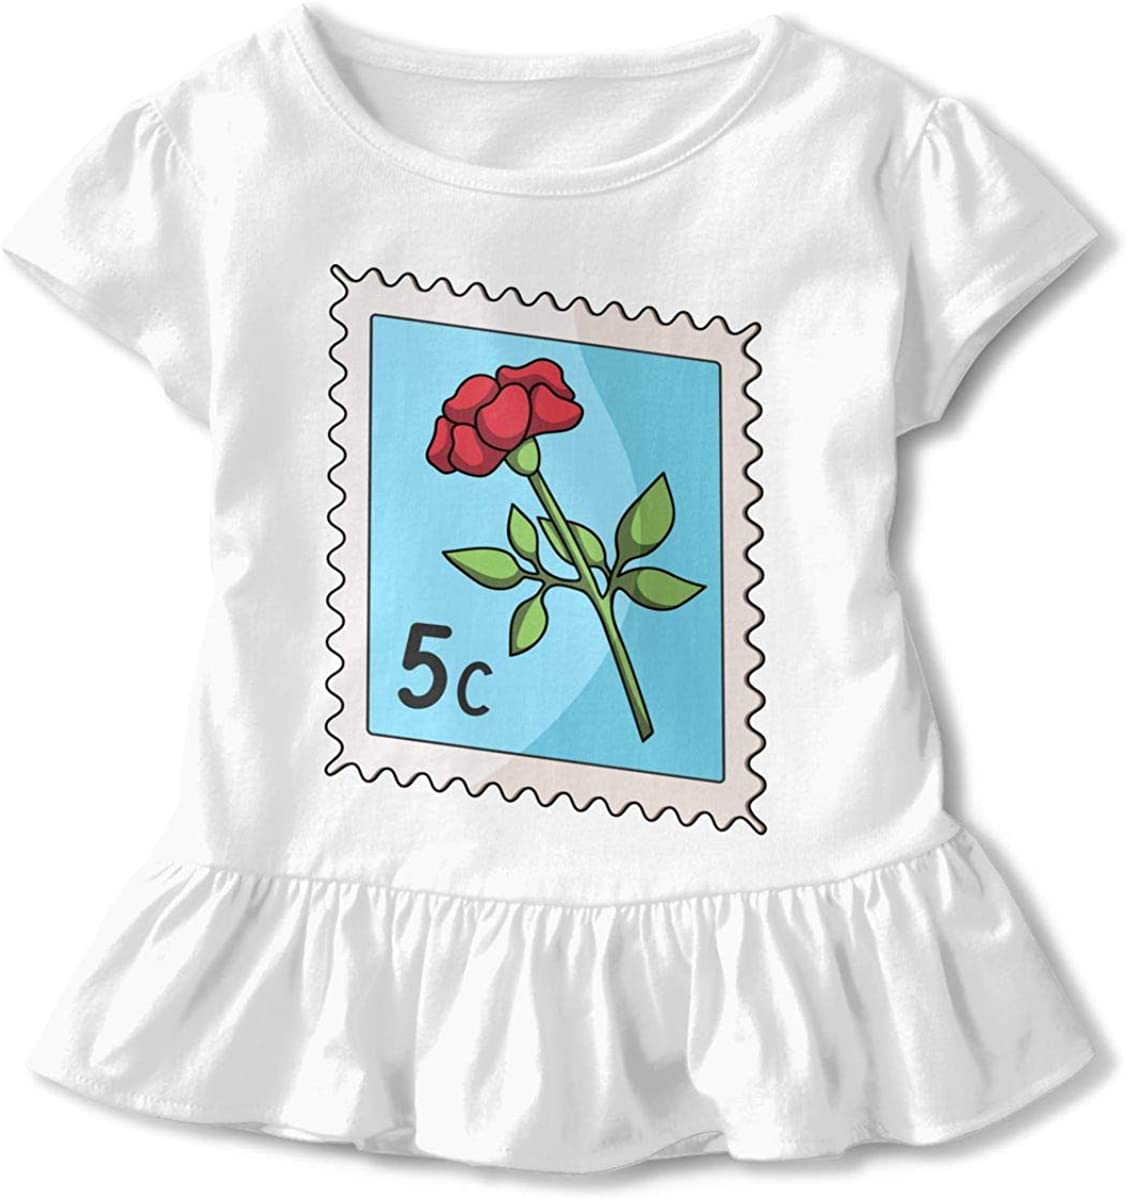 Not Available Postage Stamp Toddler Girls Short Sleeve T-Shirt Ruffles Cute Shirt Dress for 2-6 Years Old Baby